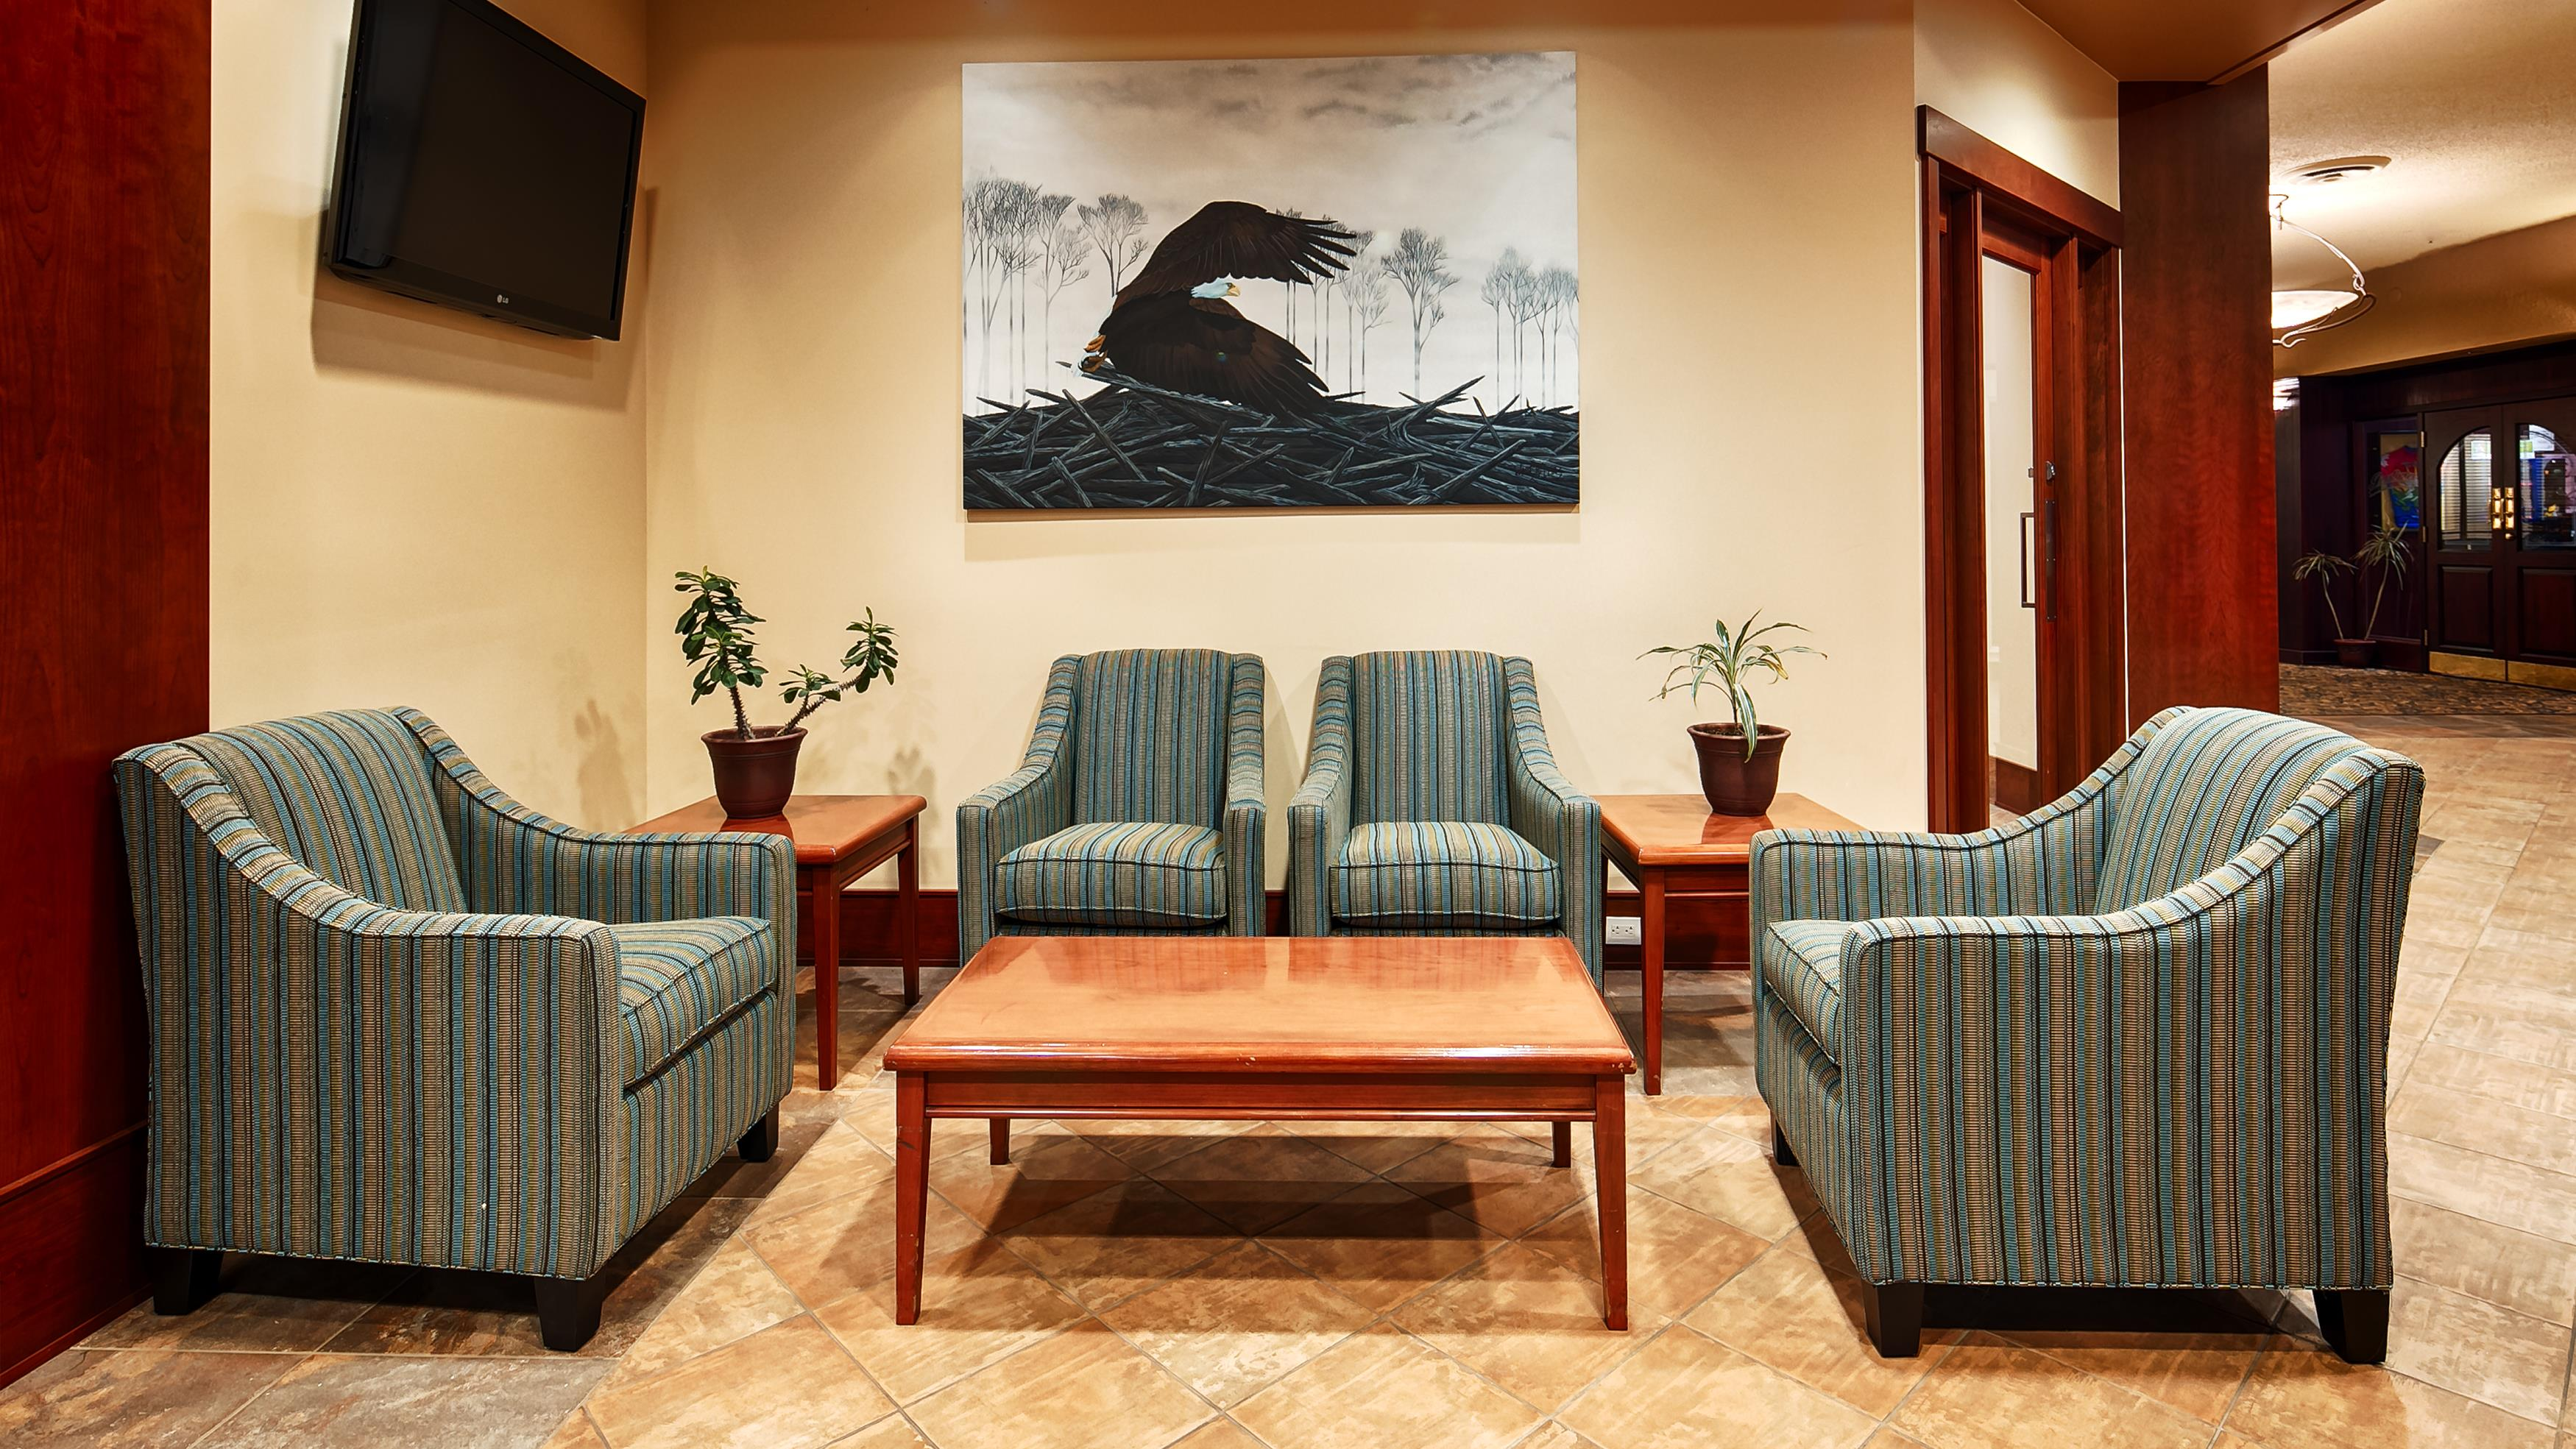 Best Western Plus Barclay Hotel in Port Alberni: Lobby